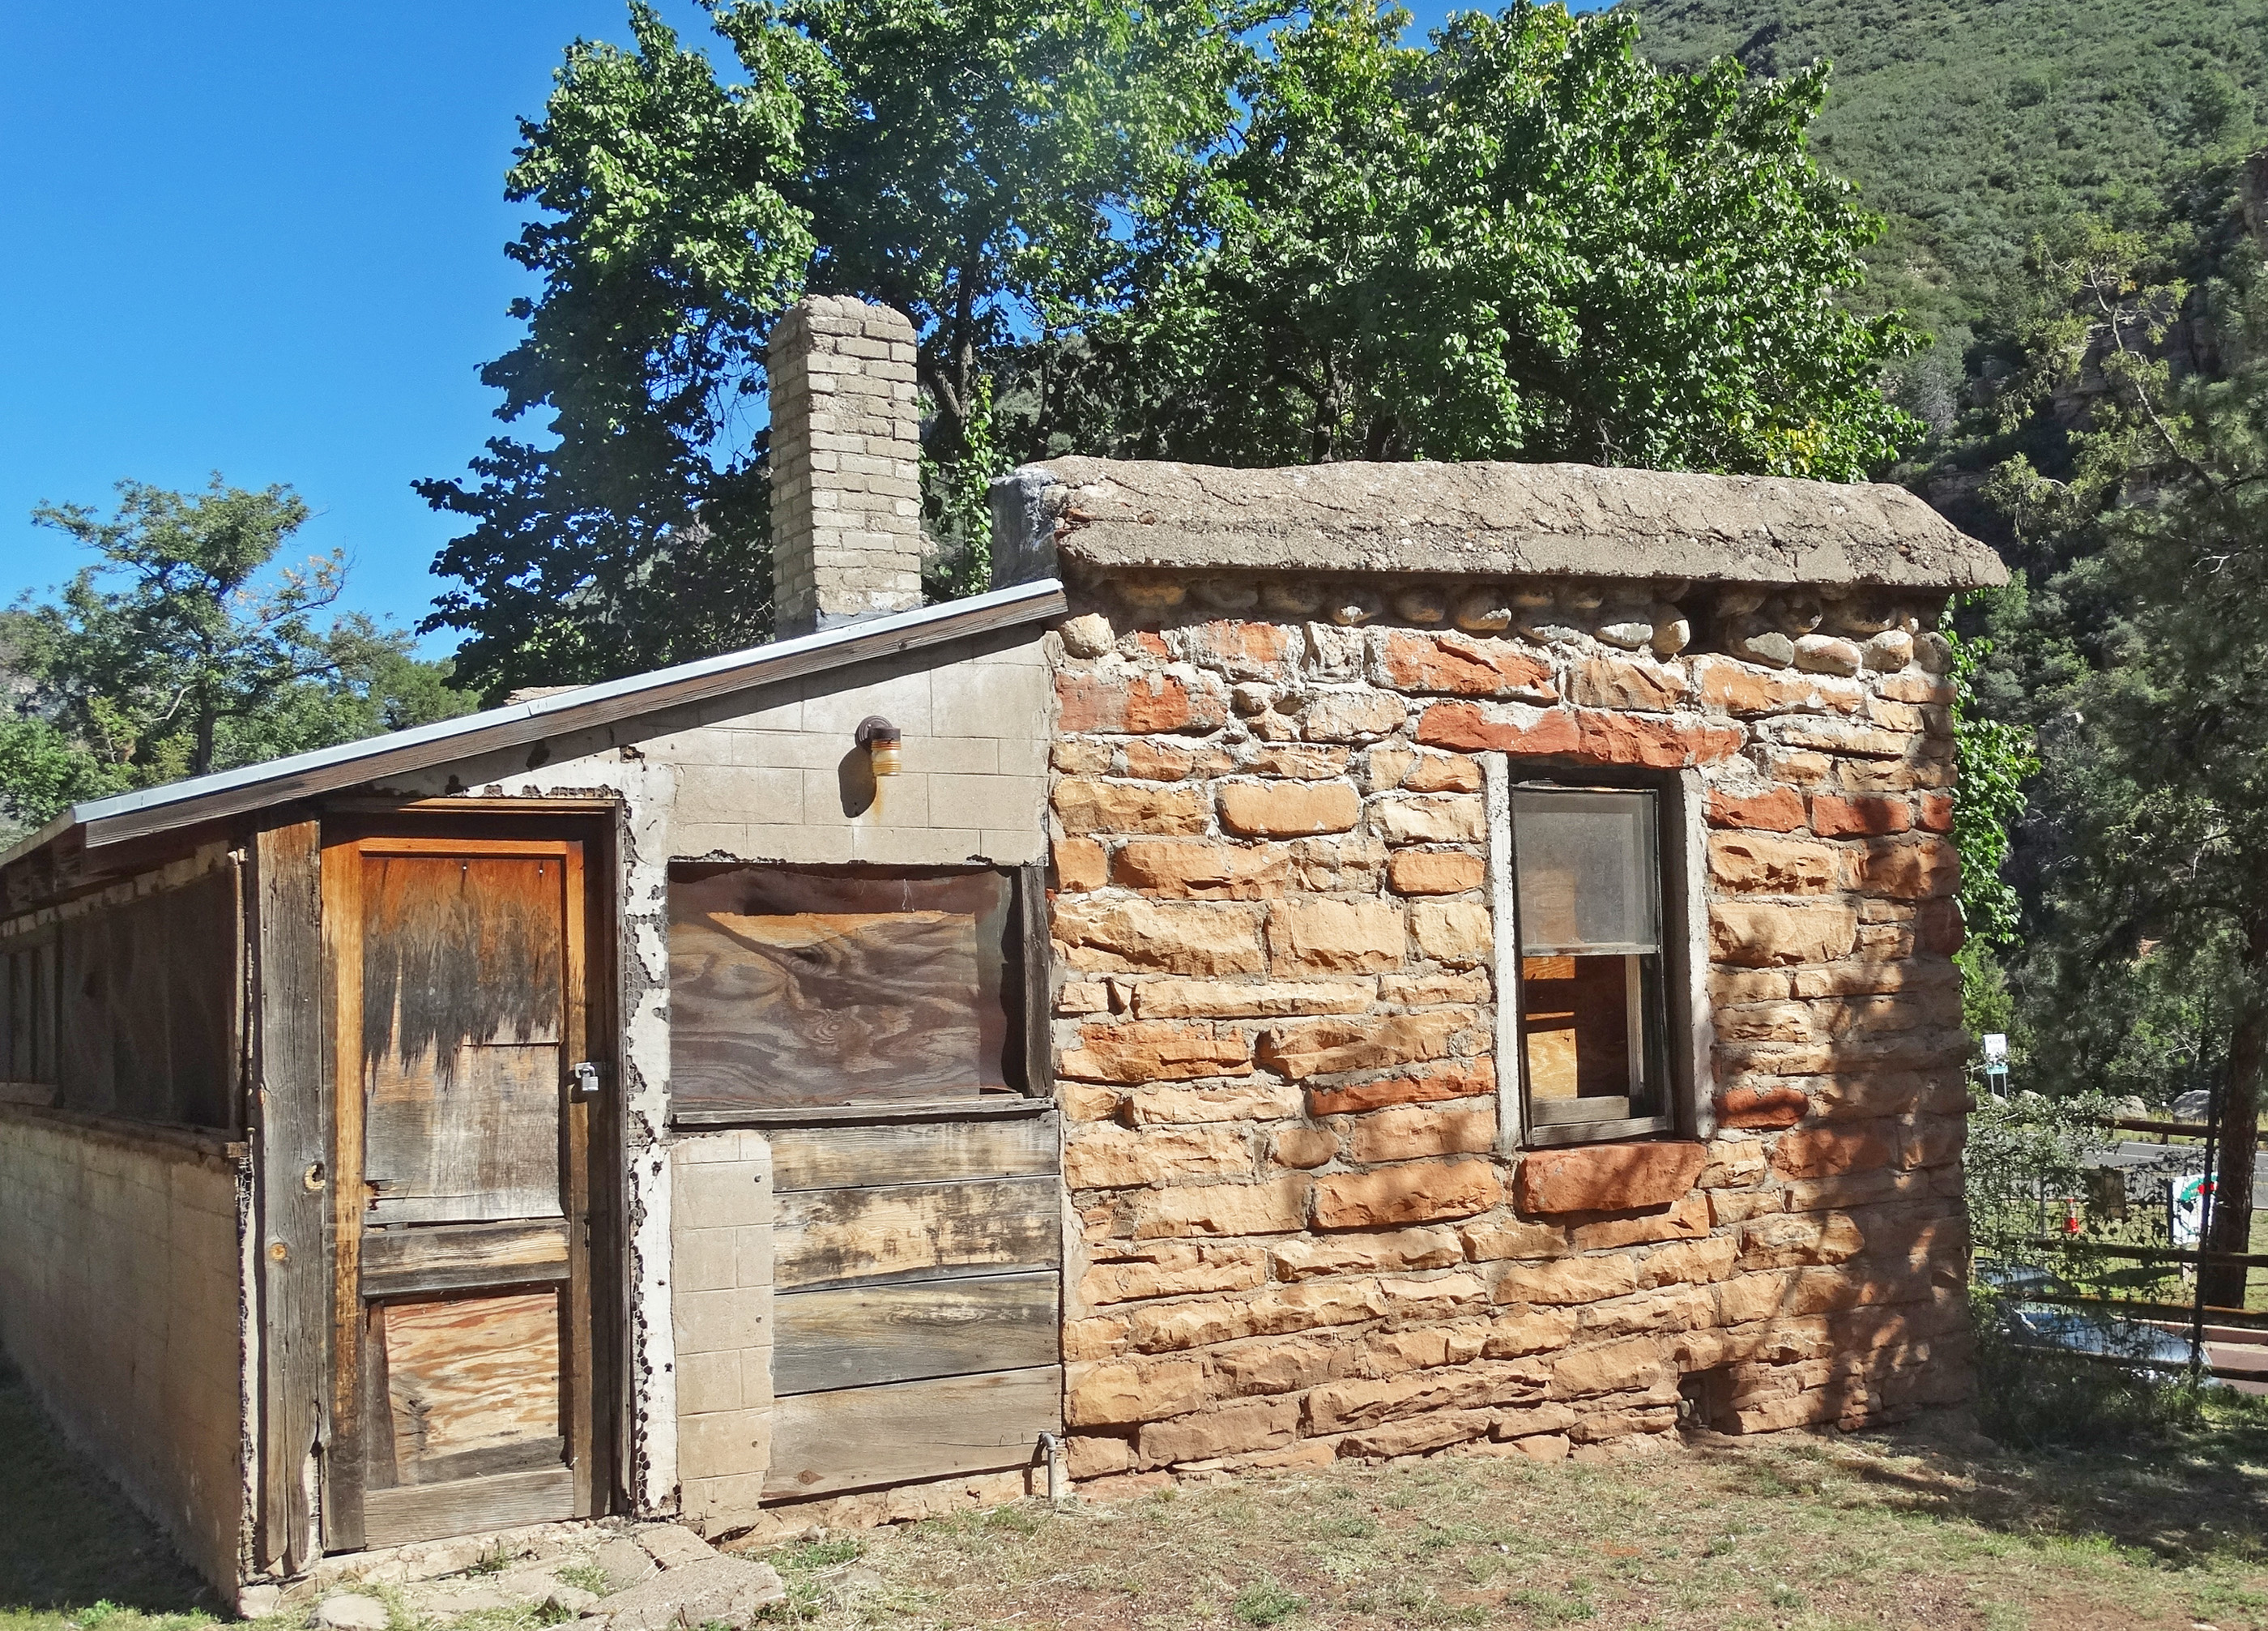 File:Old Tourist Cabins, Oak Creek Canyon, AZ 9 15 (22033004531